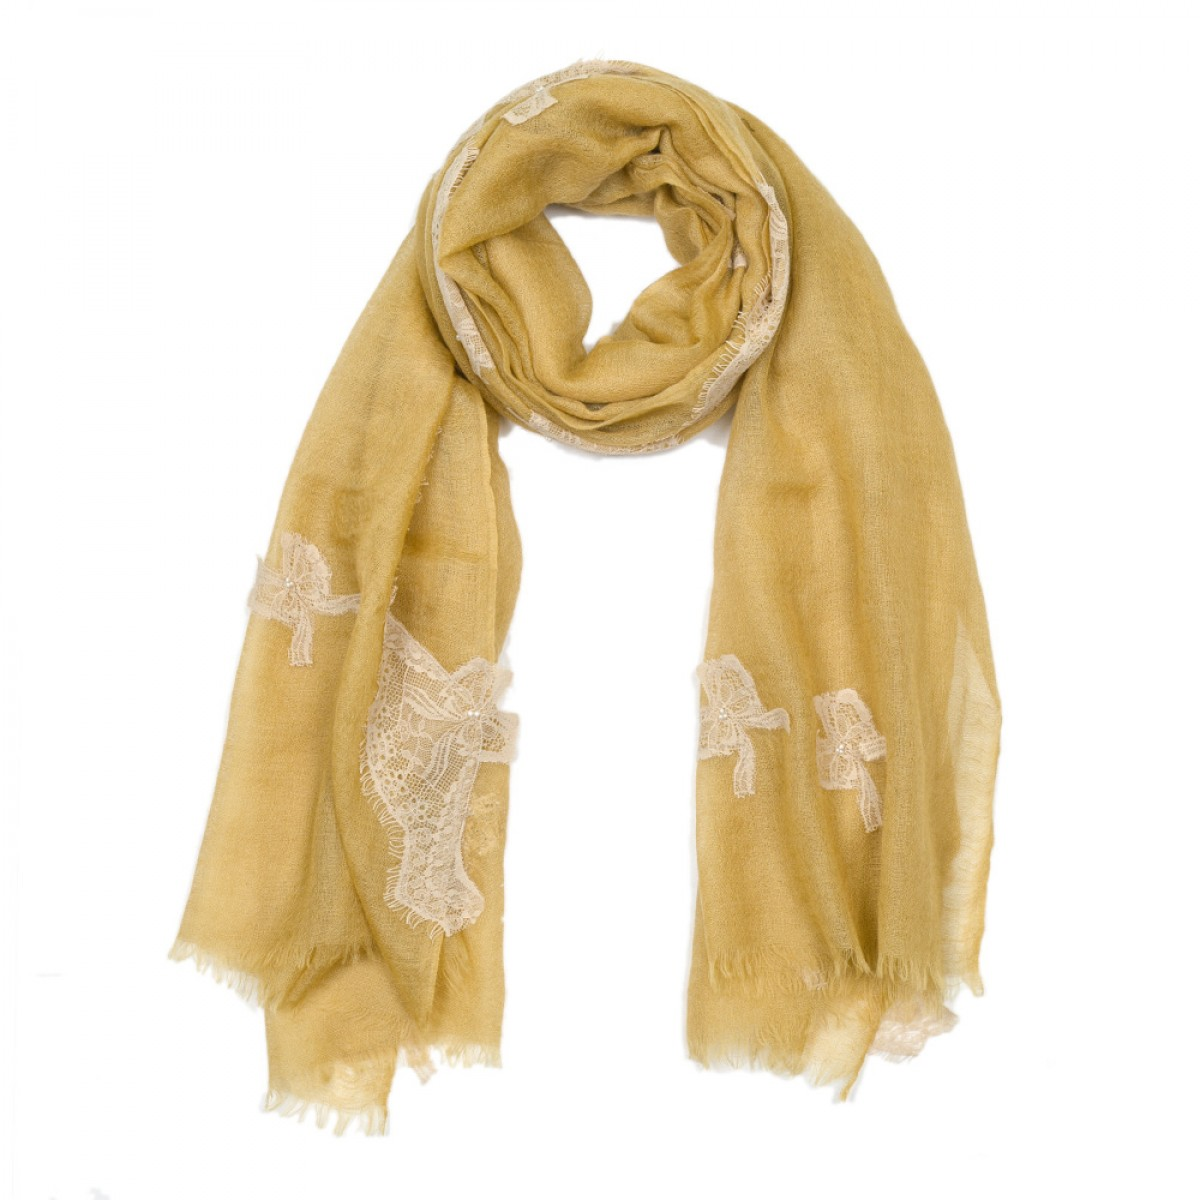 Lace Sheer Cashmere Pashmina Scarf - Honey Butterfly